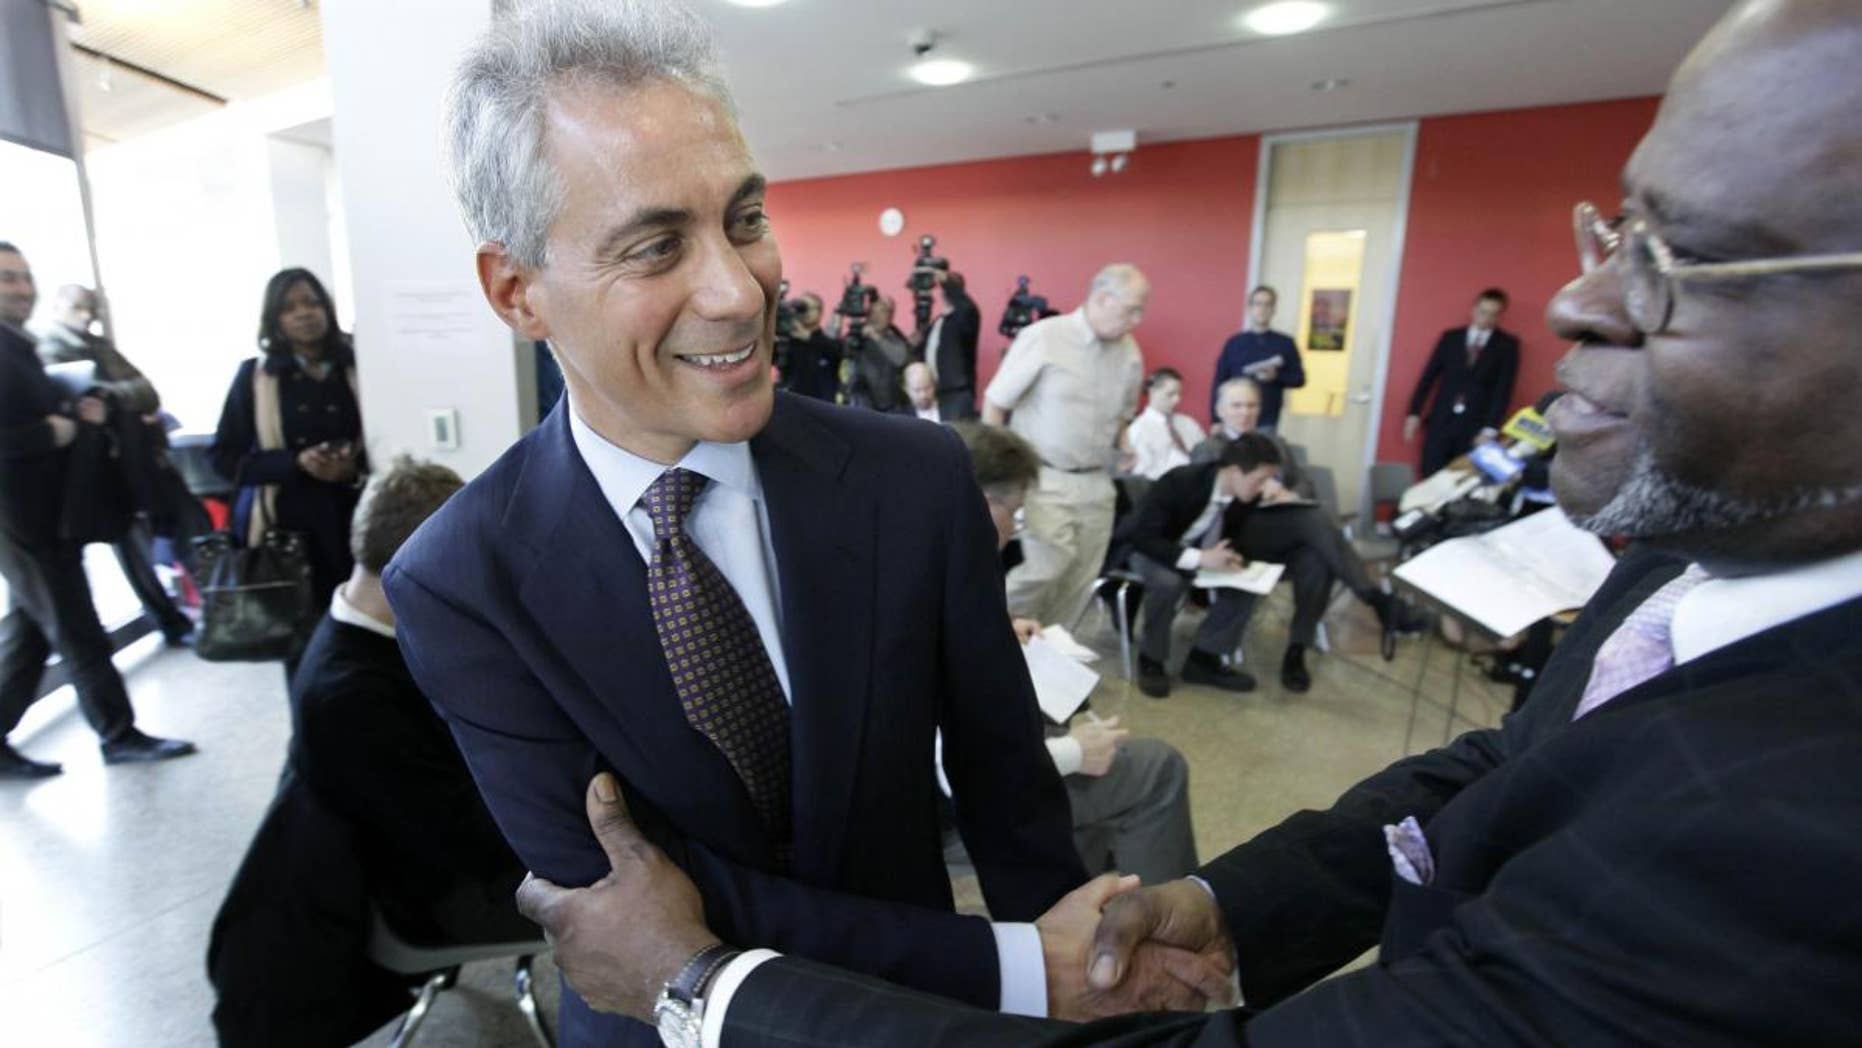 Chicago mayoral candidate Rahm Emanuel shakes hands after speaking at a news conference at the Better Boys Foundation, Tuesday, Jan. 4, 2011, in Chicago. (AP Photo/M. Spencer Green)